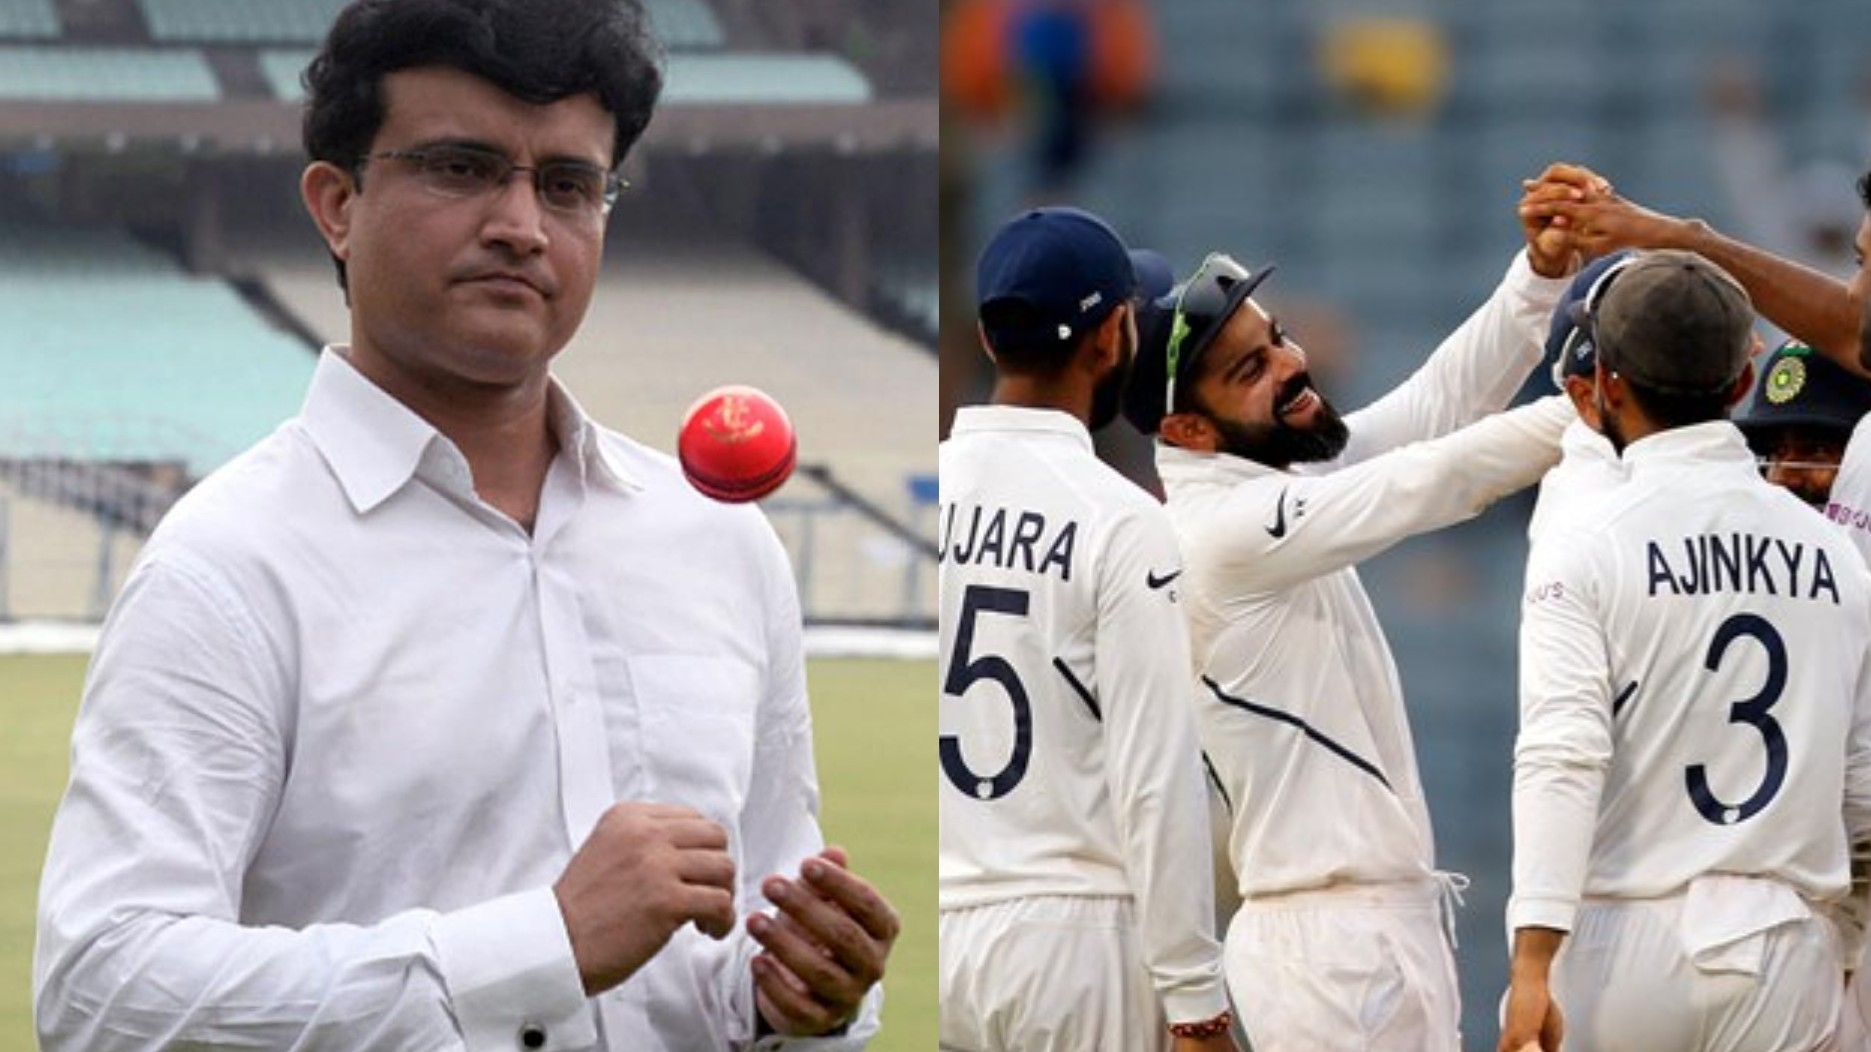 IND v BAN 2019: Kohli would be happy to see a jam-packed Eden Gardens for D/N Test, says Ganguly